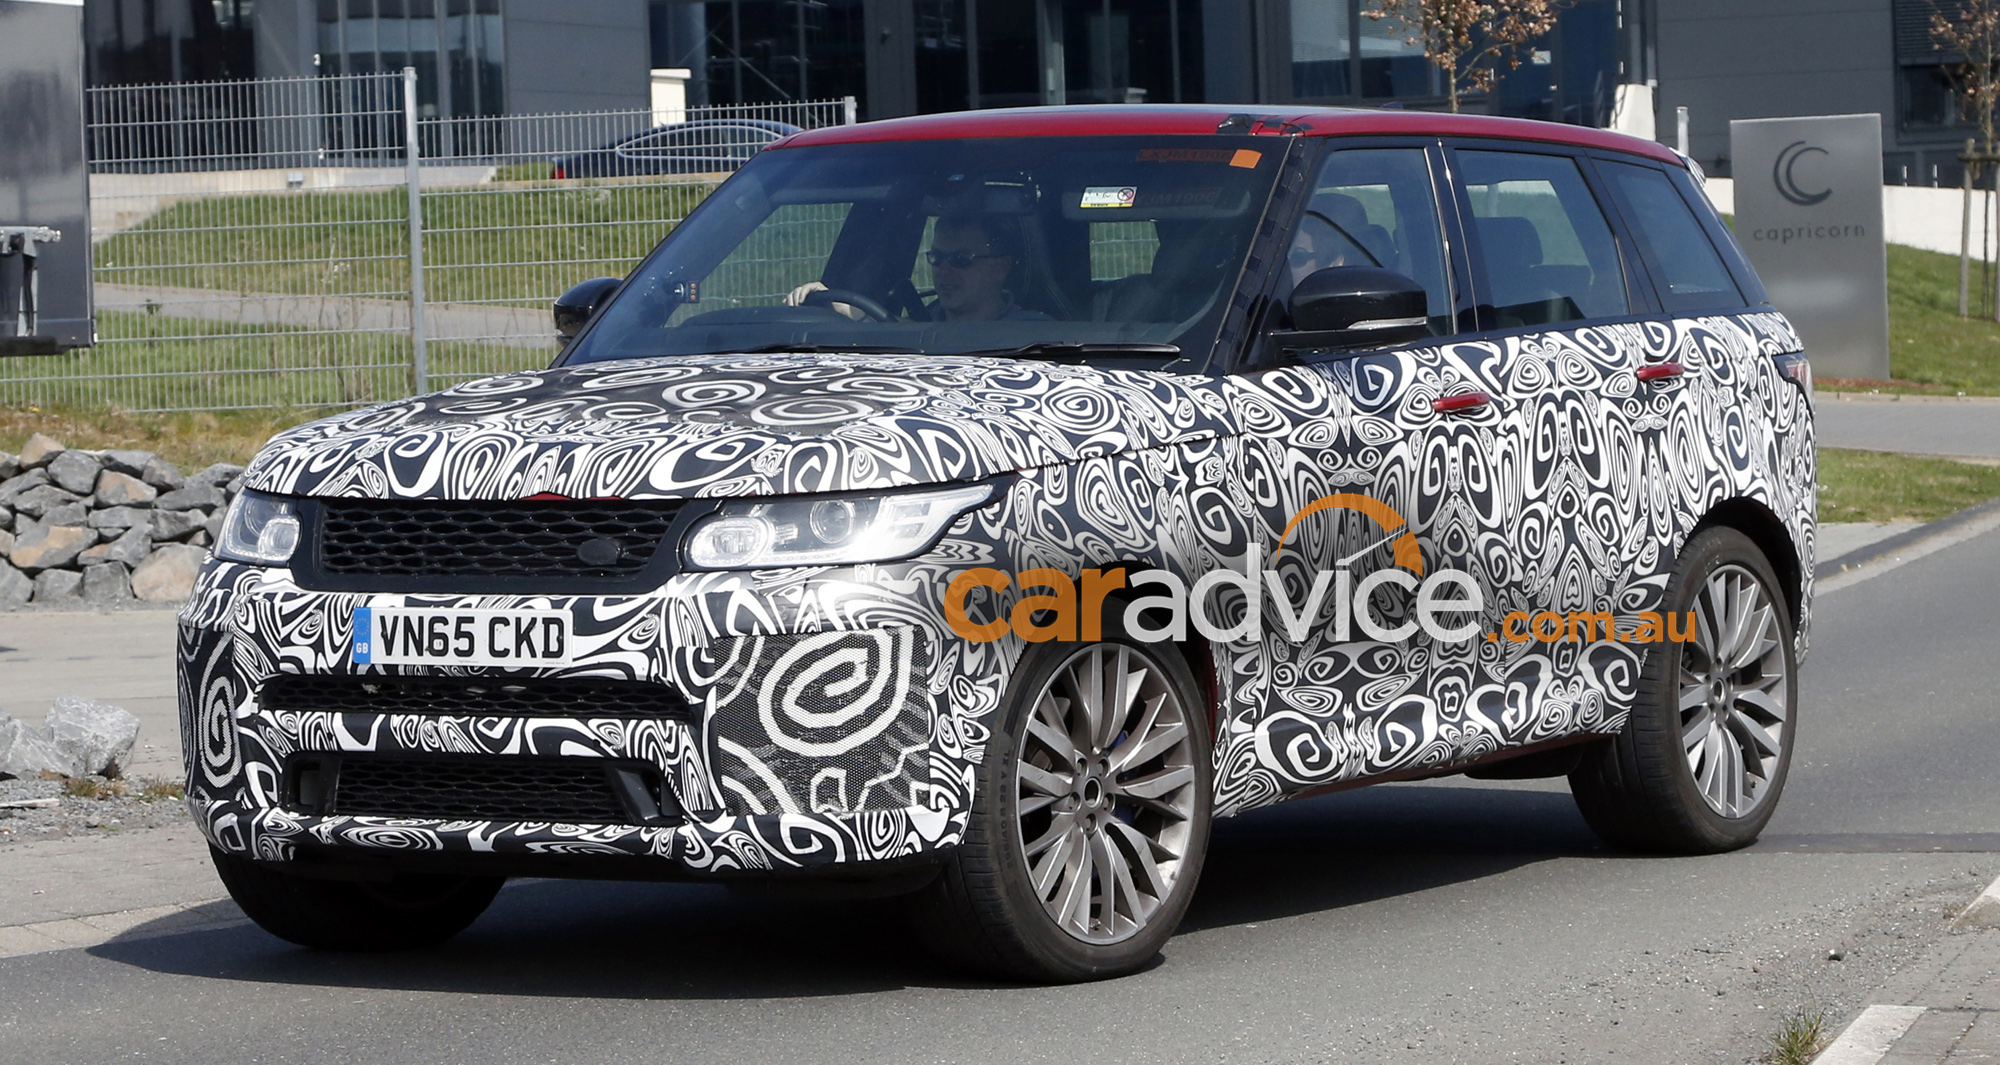 2017 range rover sport svr spied testing performance upgrades expected photos caradvice. Black Bedroom Furniture Sets. Home Design Ideas